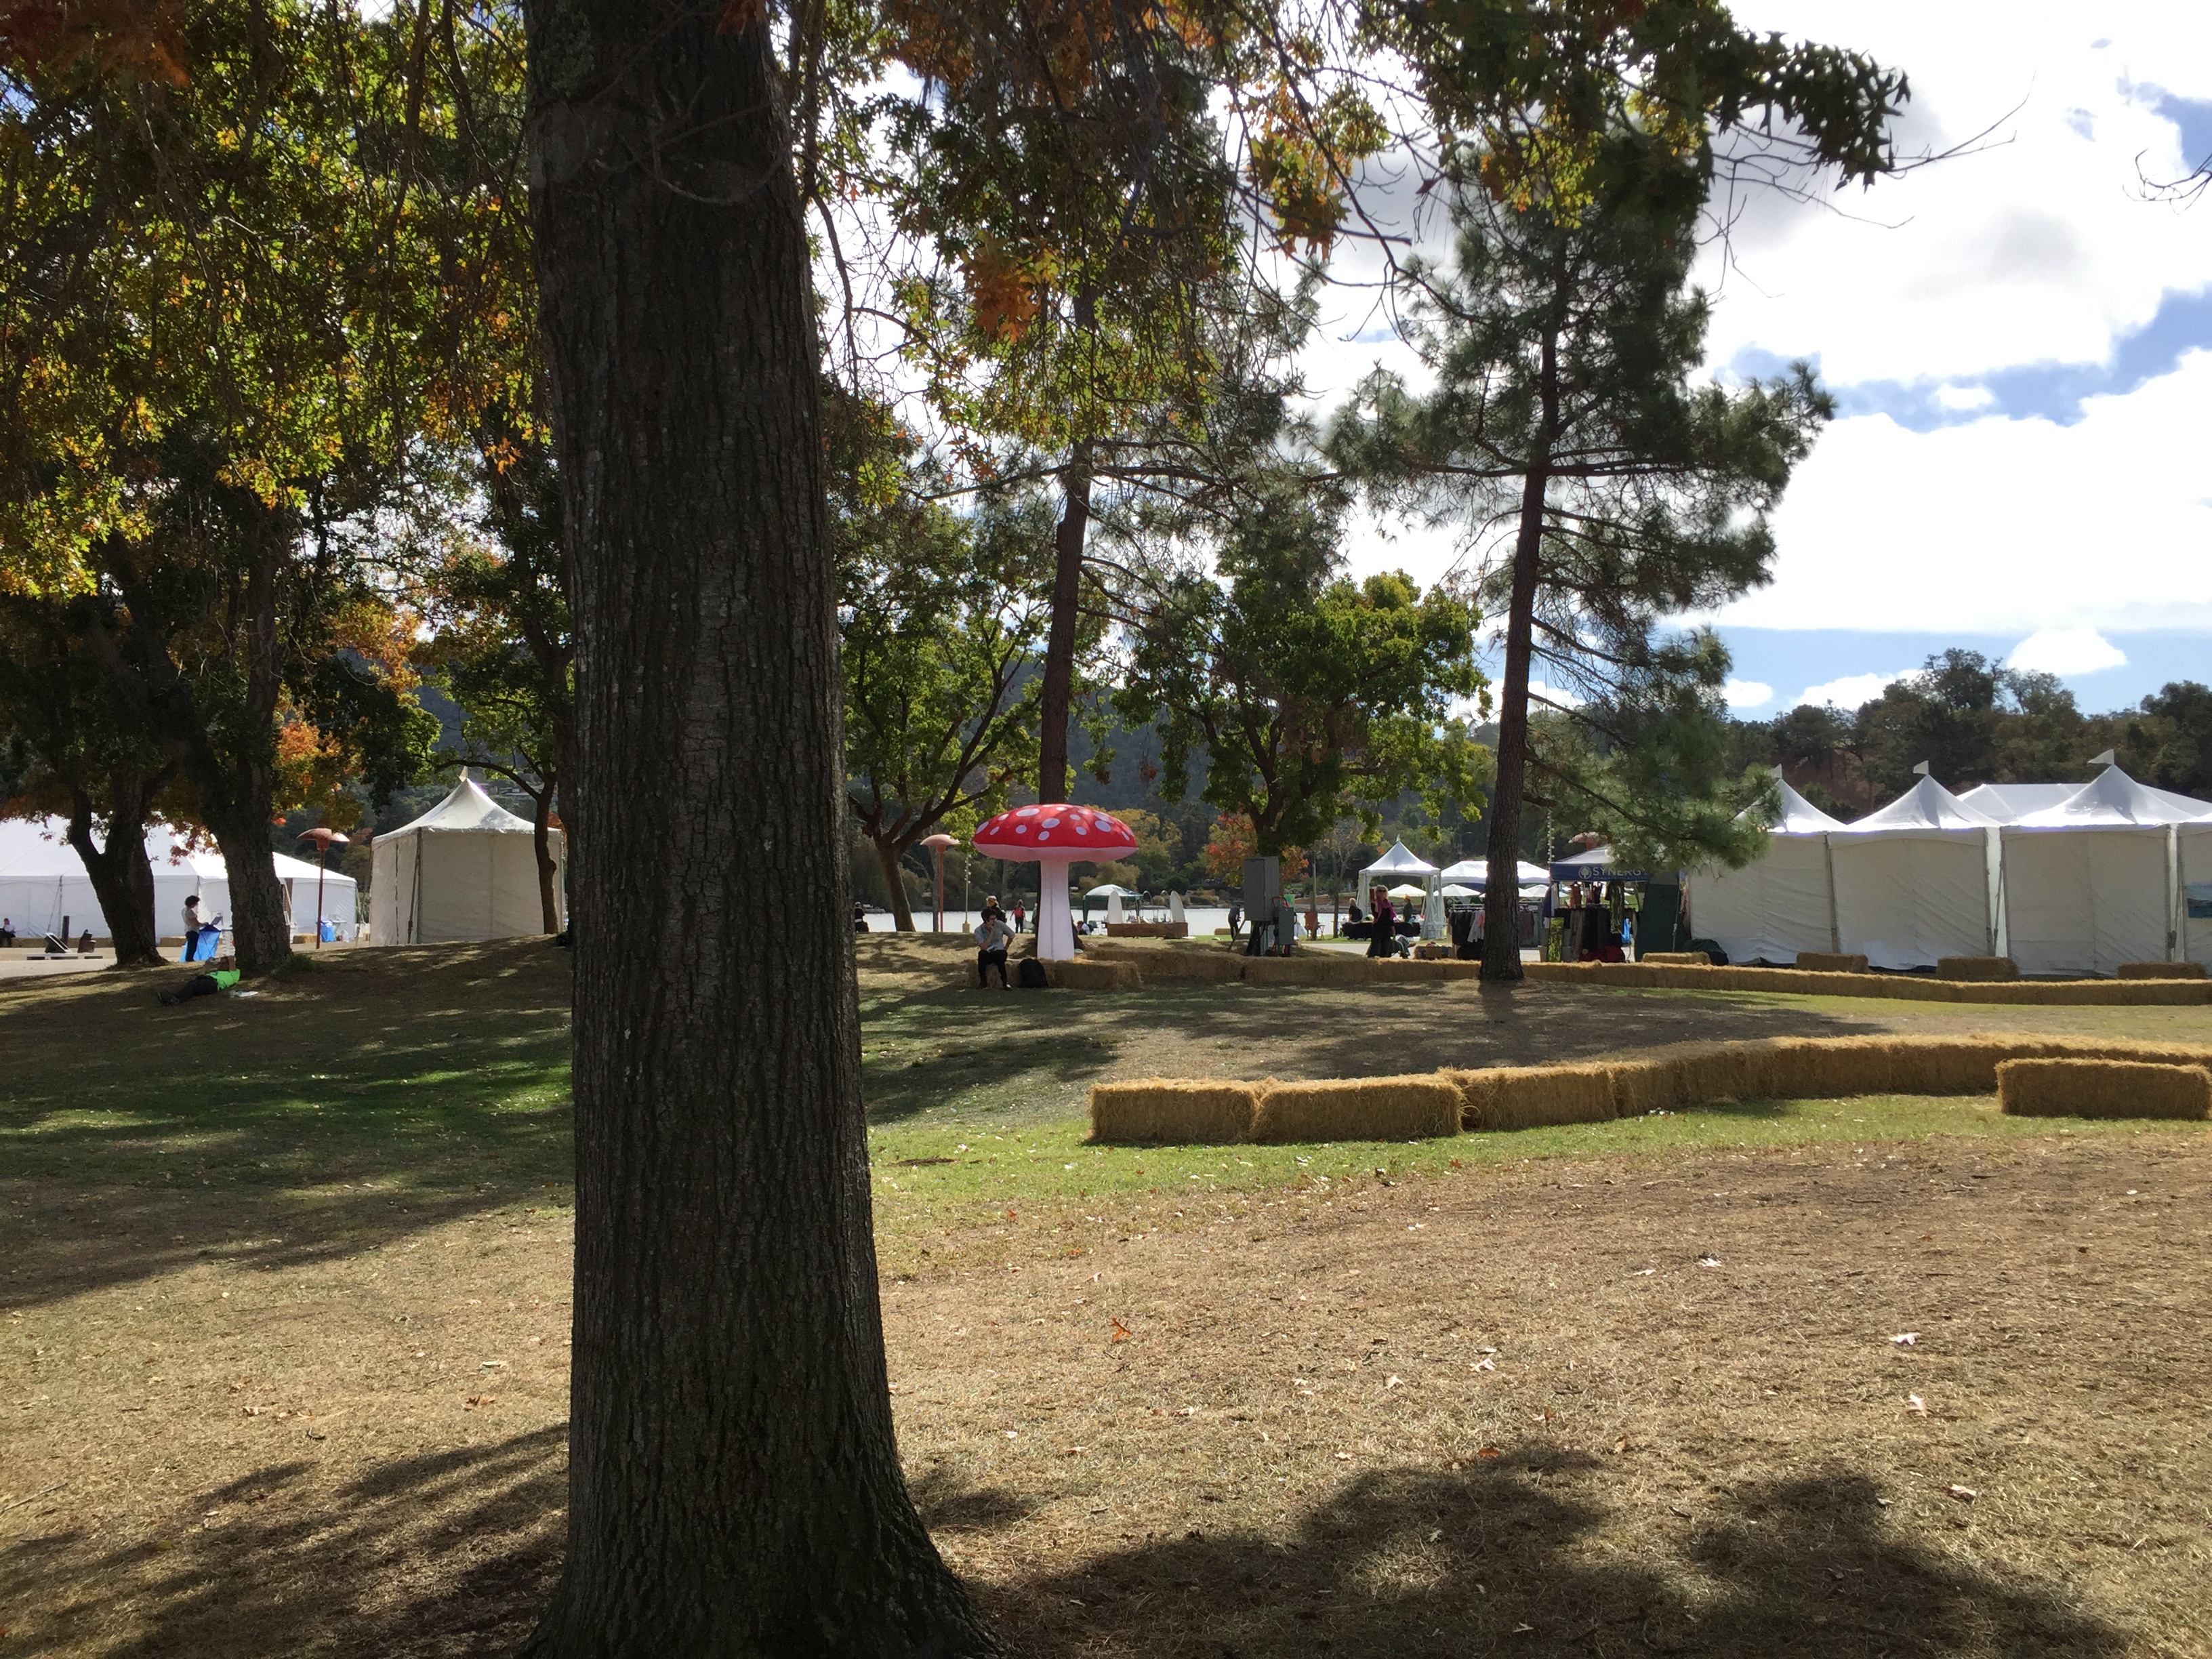 The tents and hay bales of Bioneers, with a large inflatable amanita mushroom in the middle.